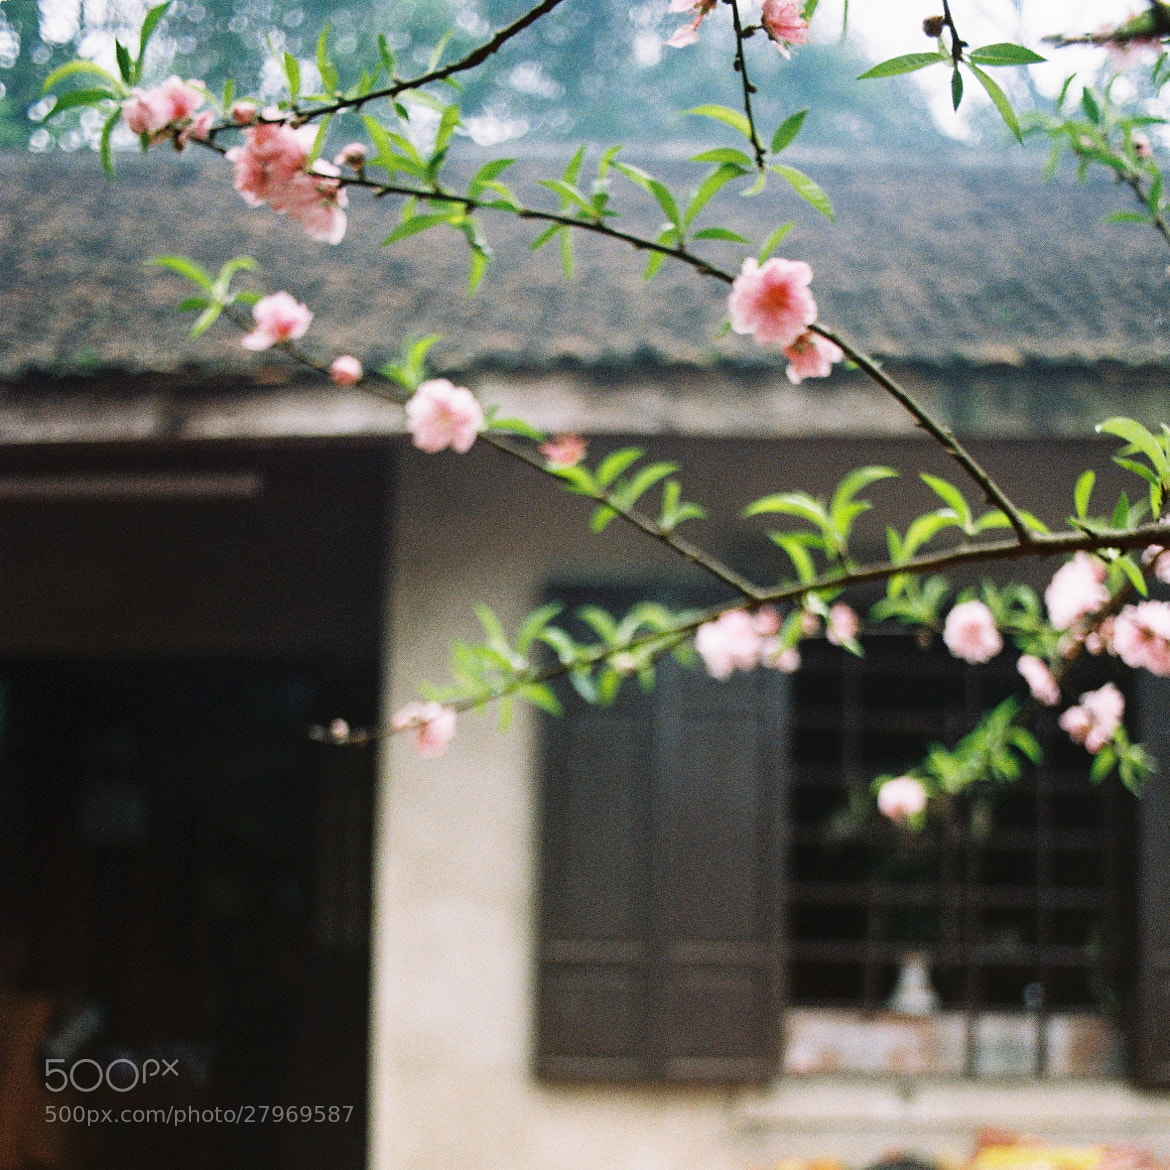 Photograph Untitled by Tran the gioi on 500px